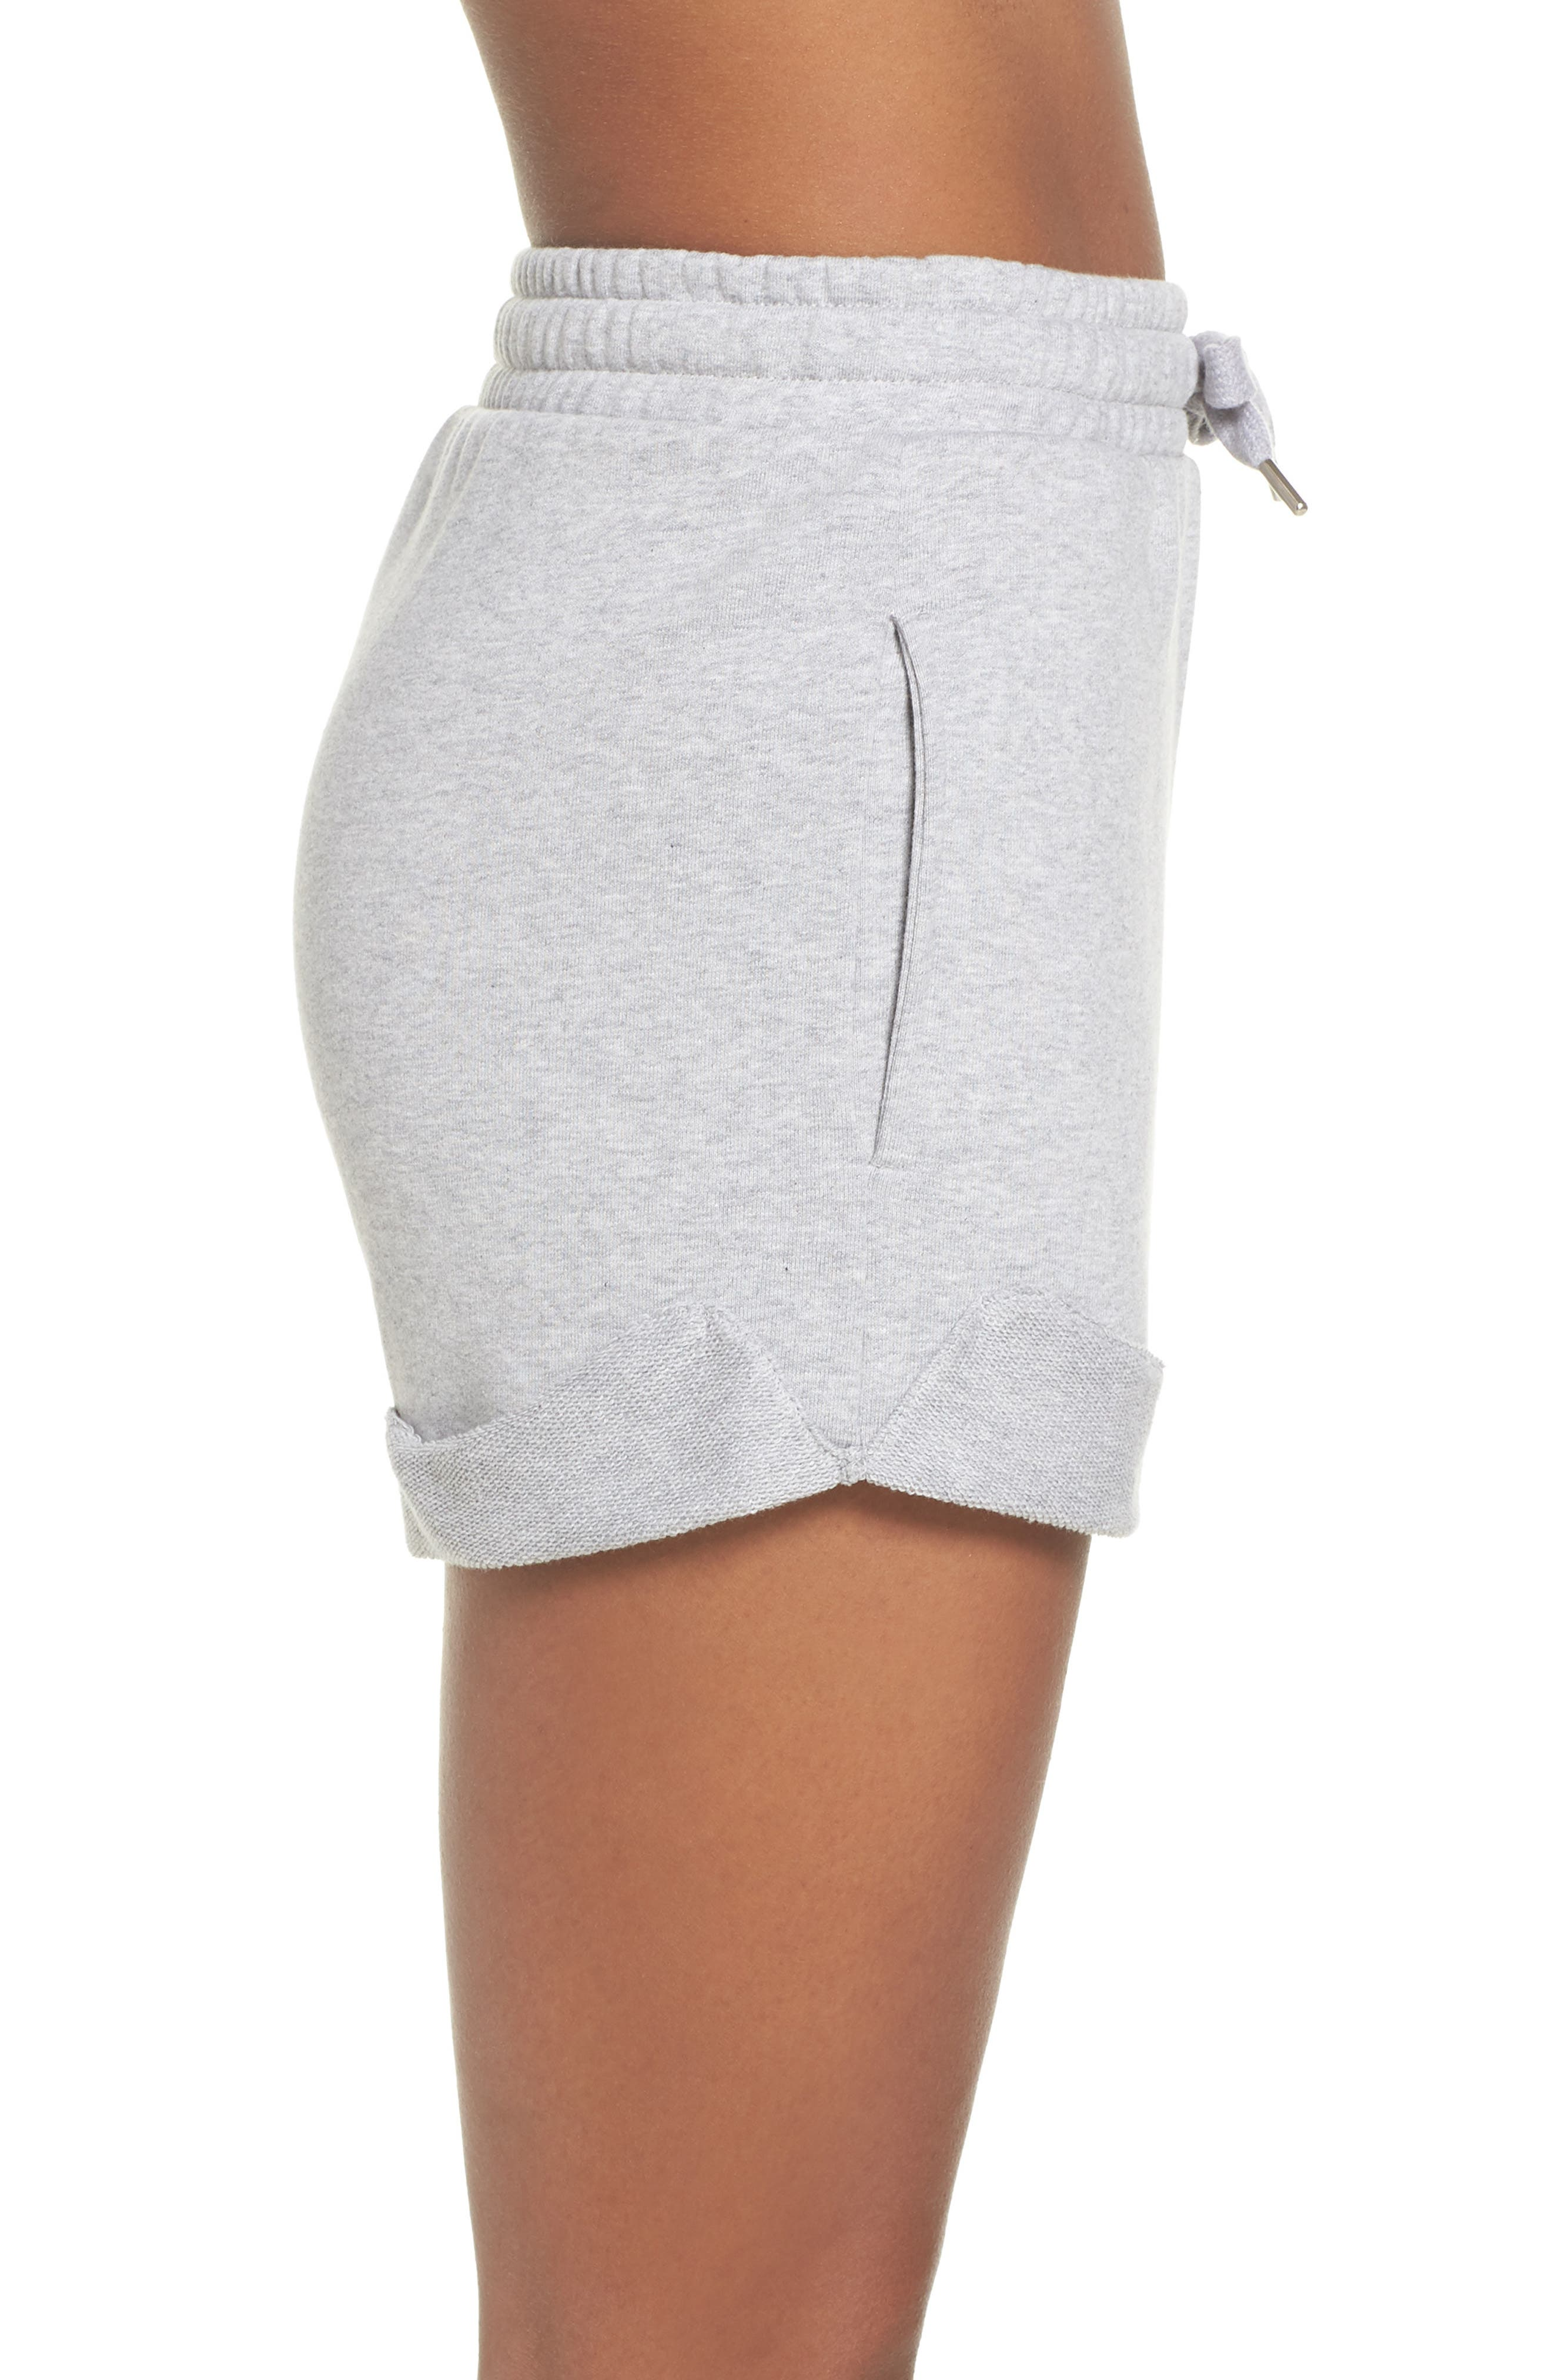 French Terry High Waist Shorts,                             Alternate thumbnail 3, color,                             Light Grey Marl